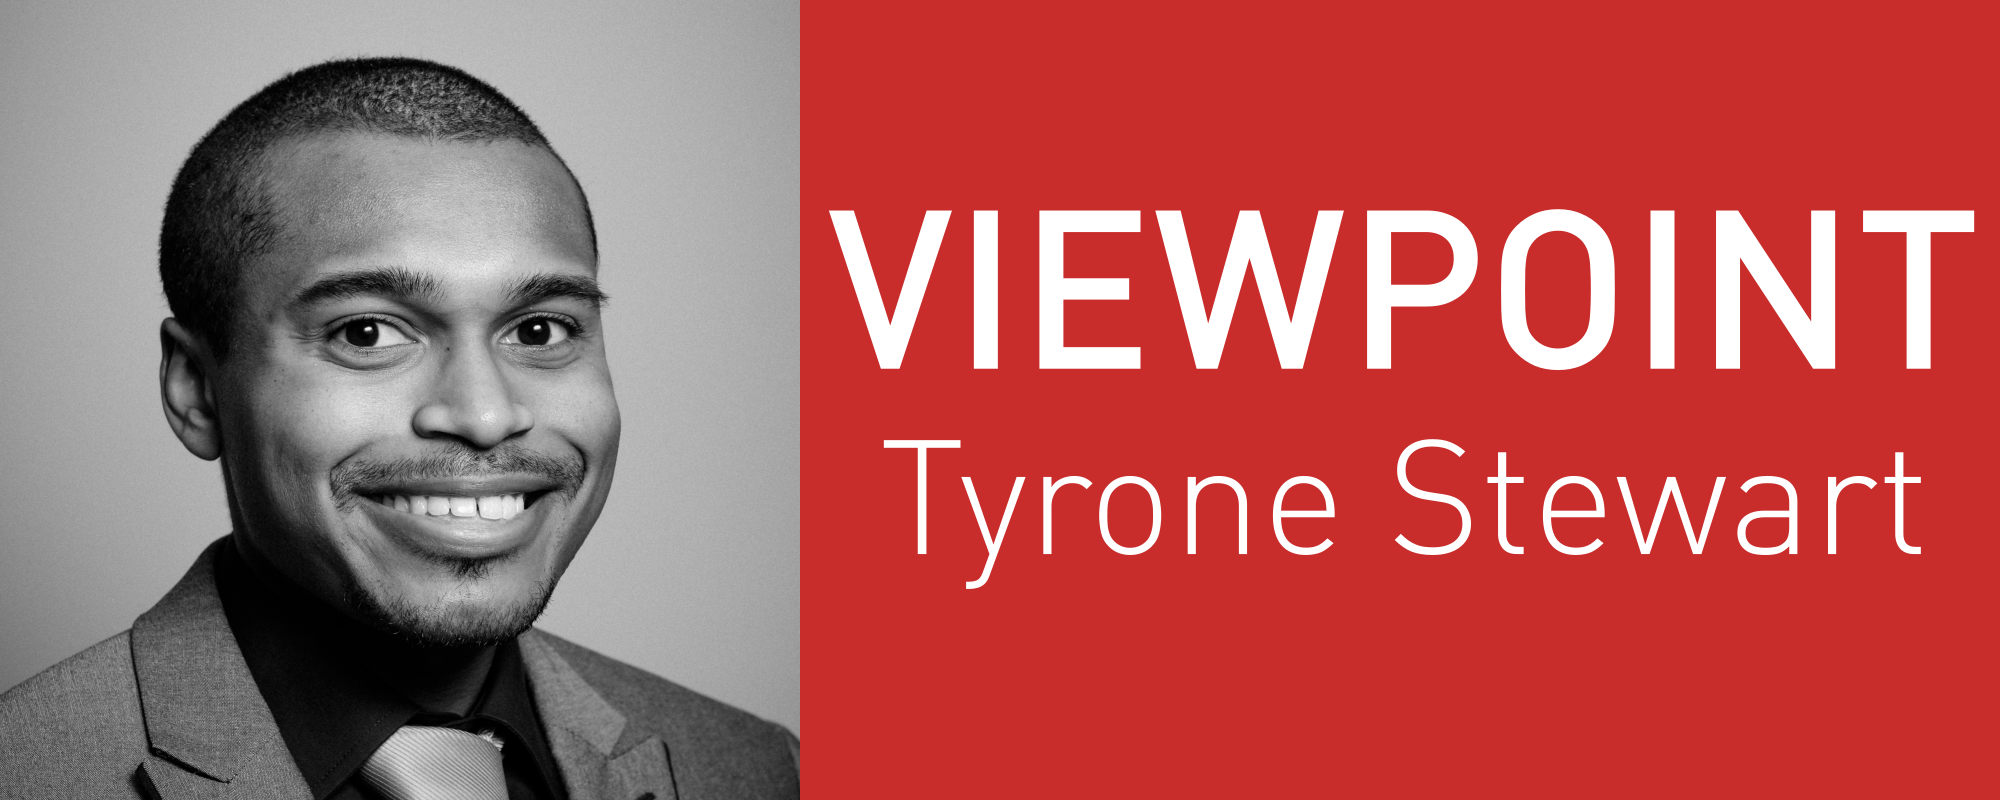 Tyrone Stewart Viewpoint